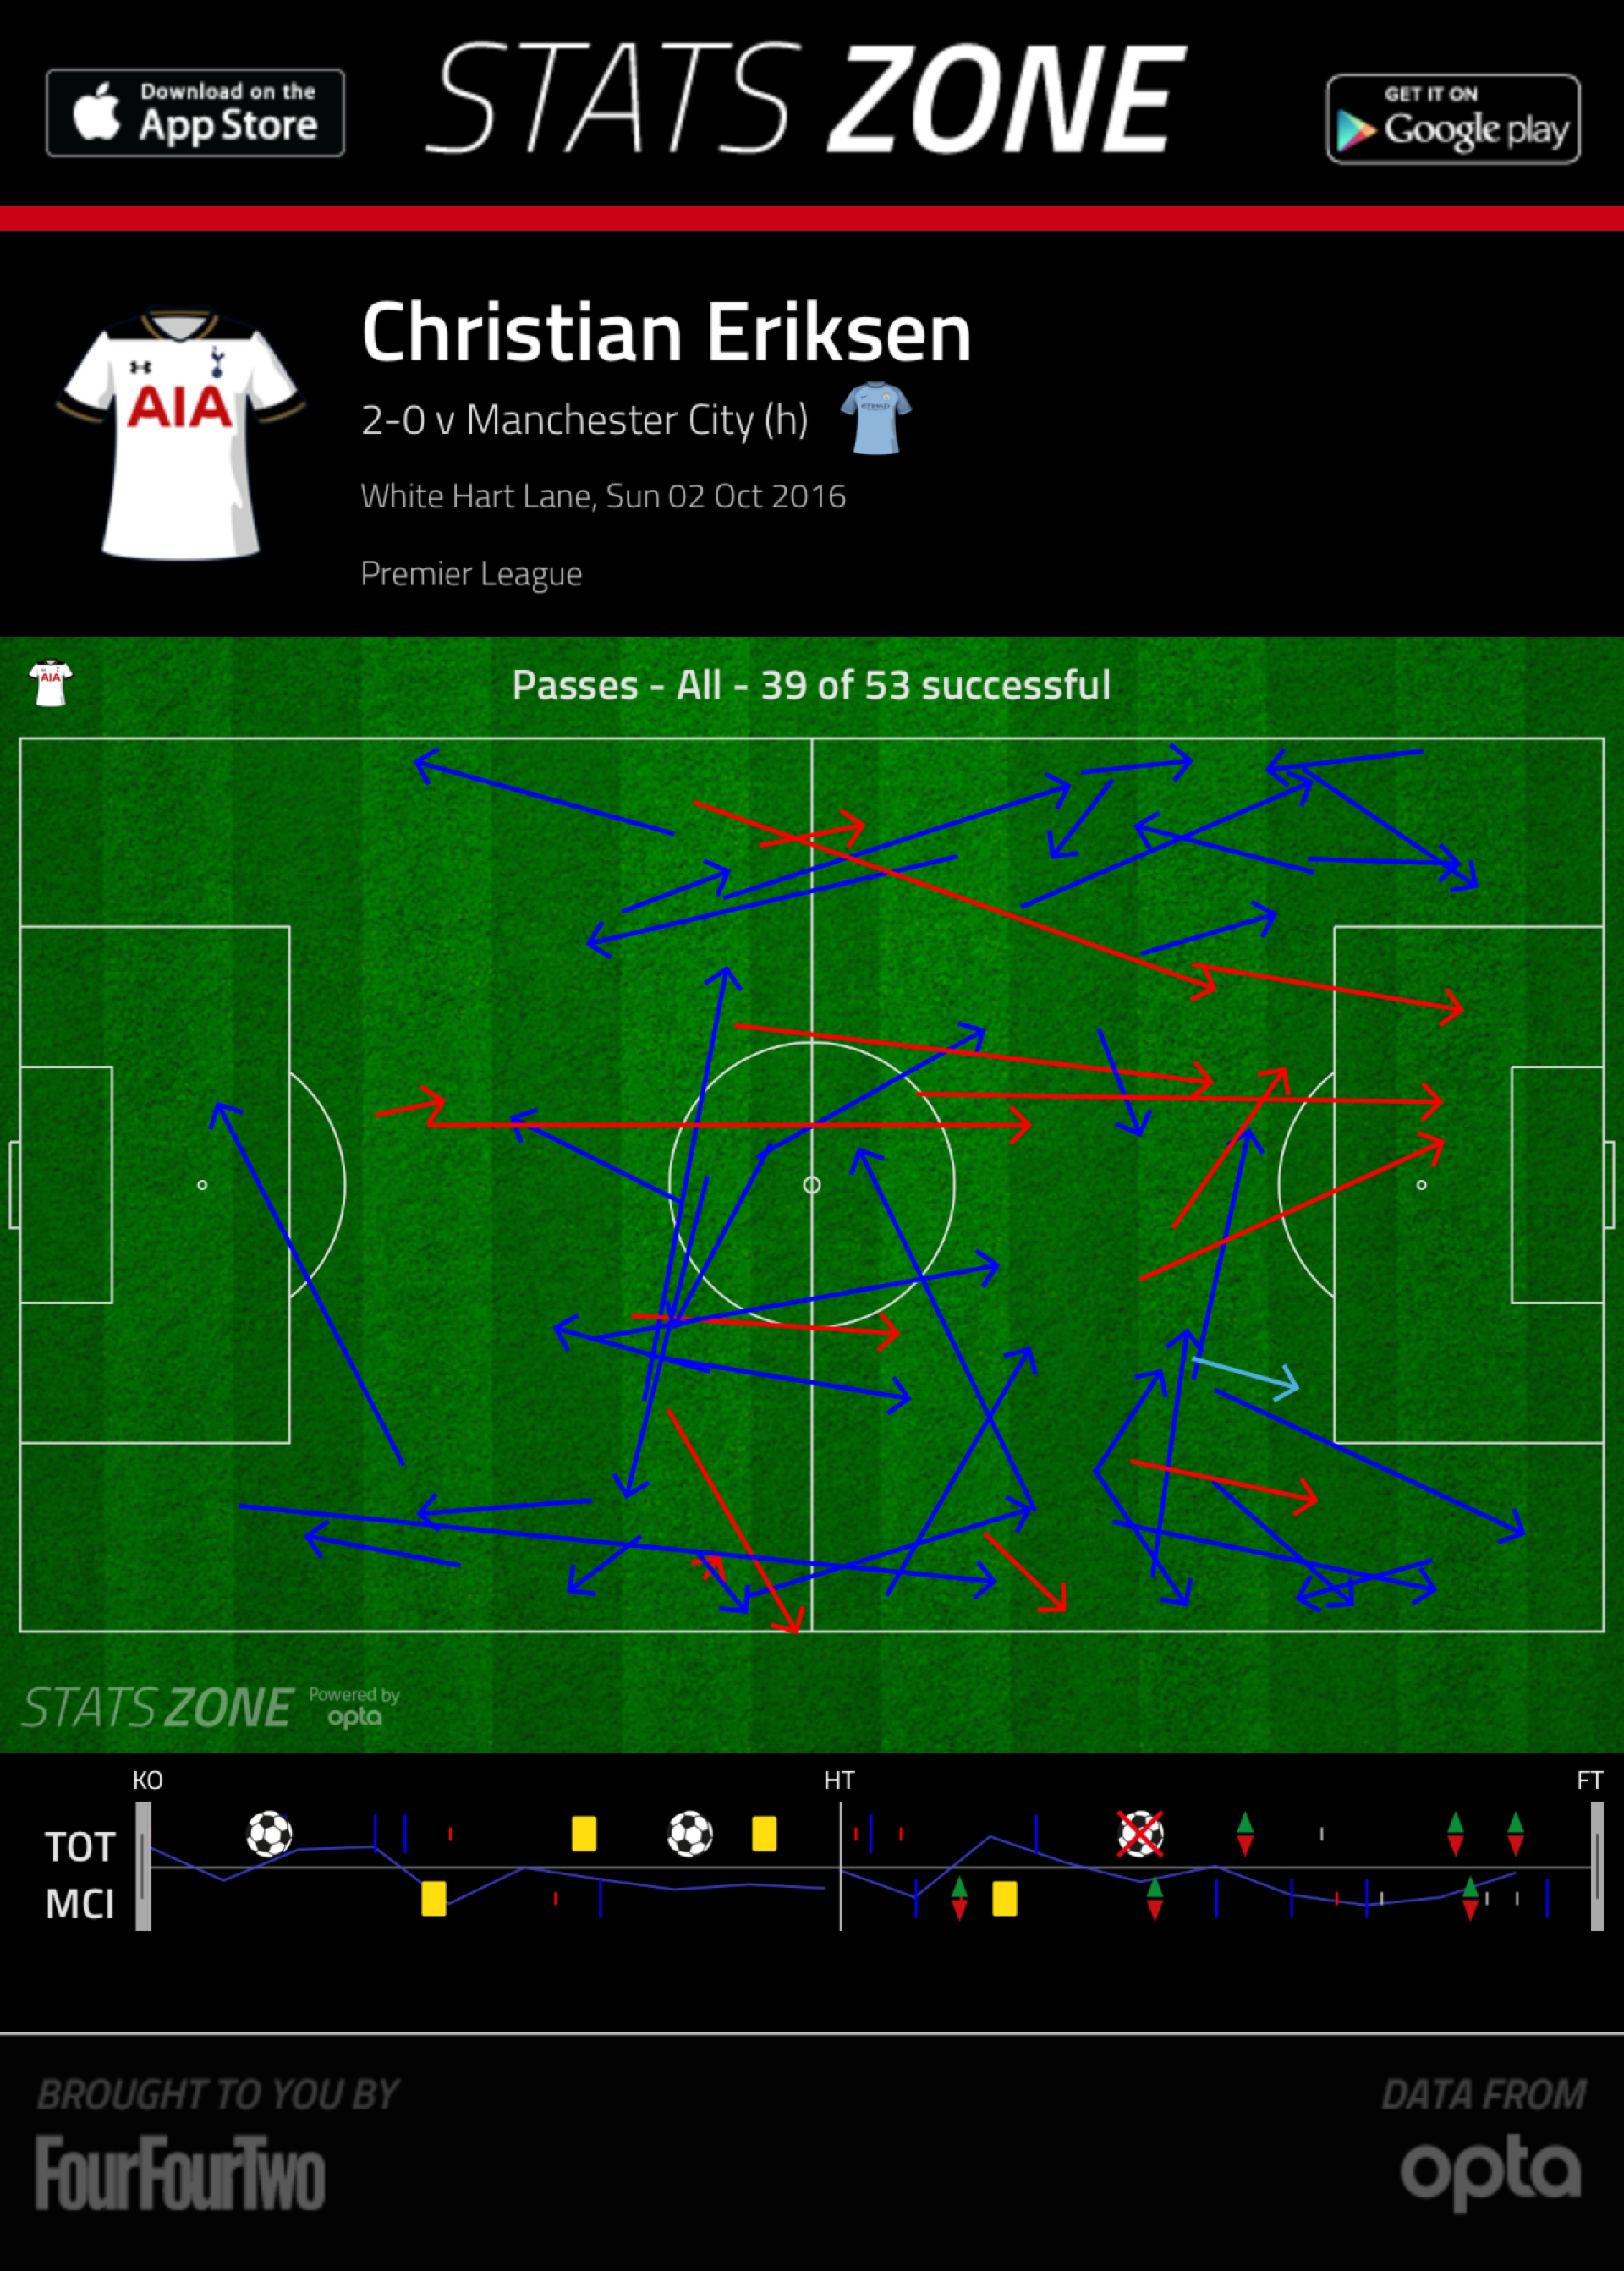 Christian Eriksen's passing vs Man City